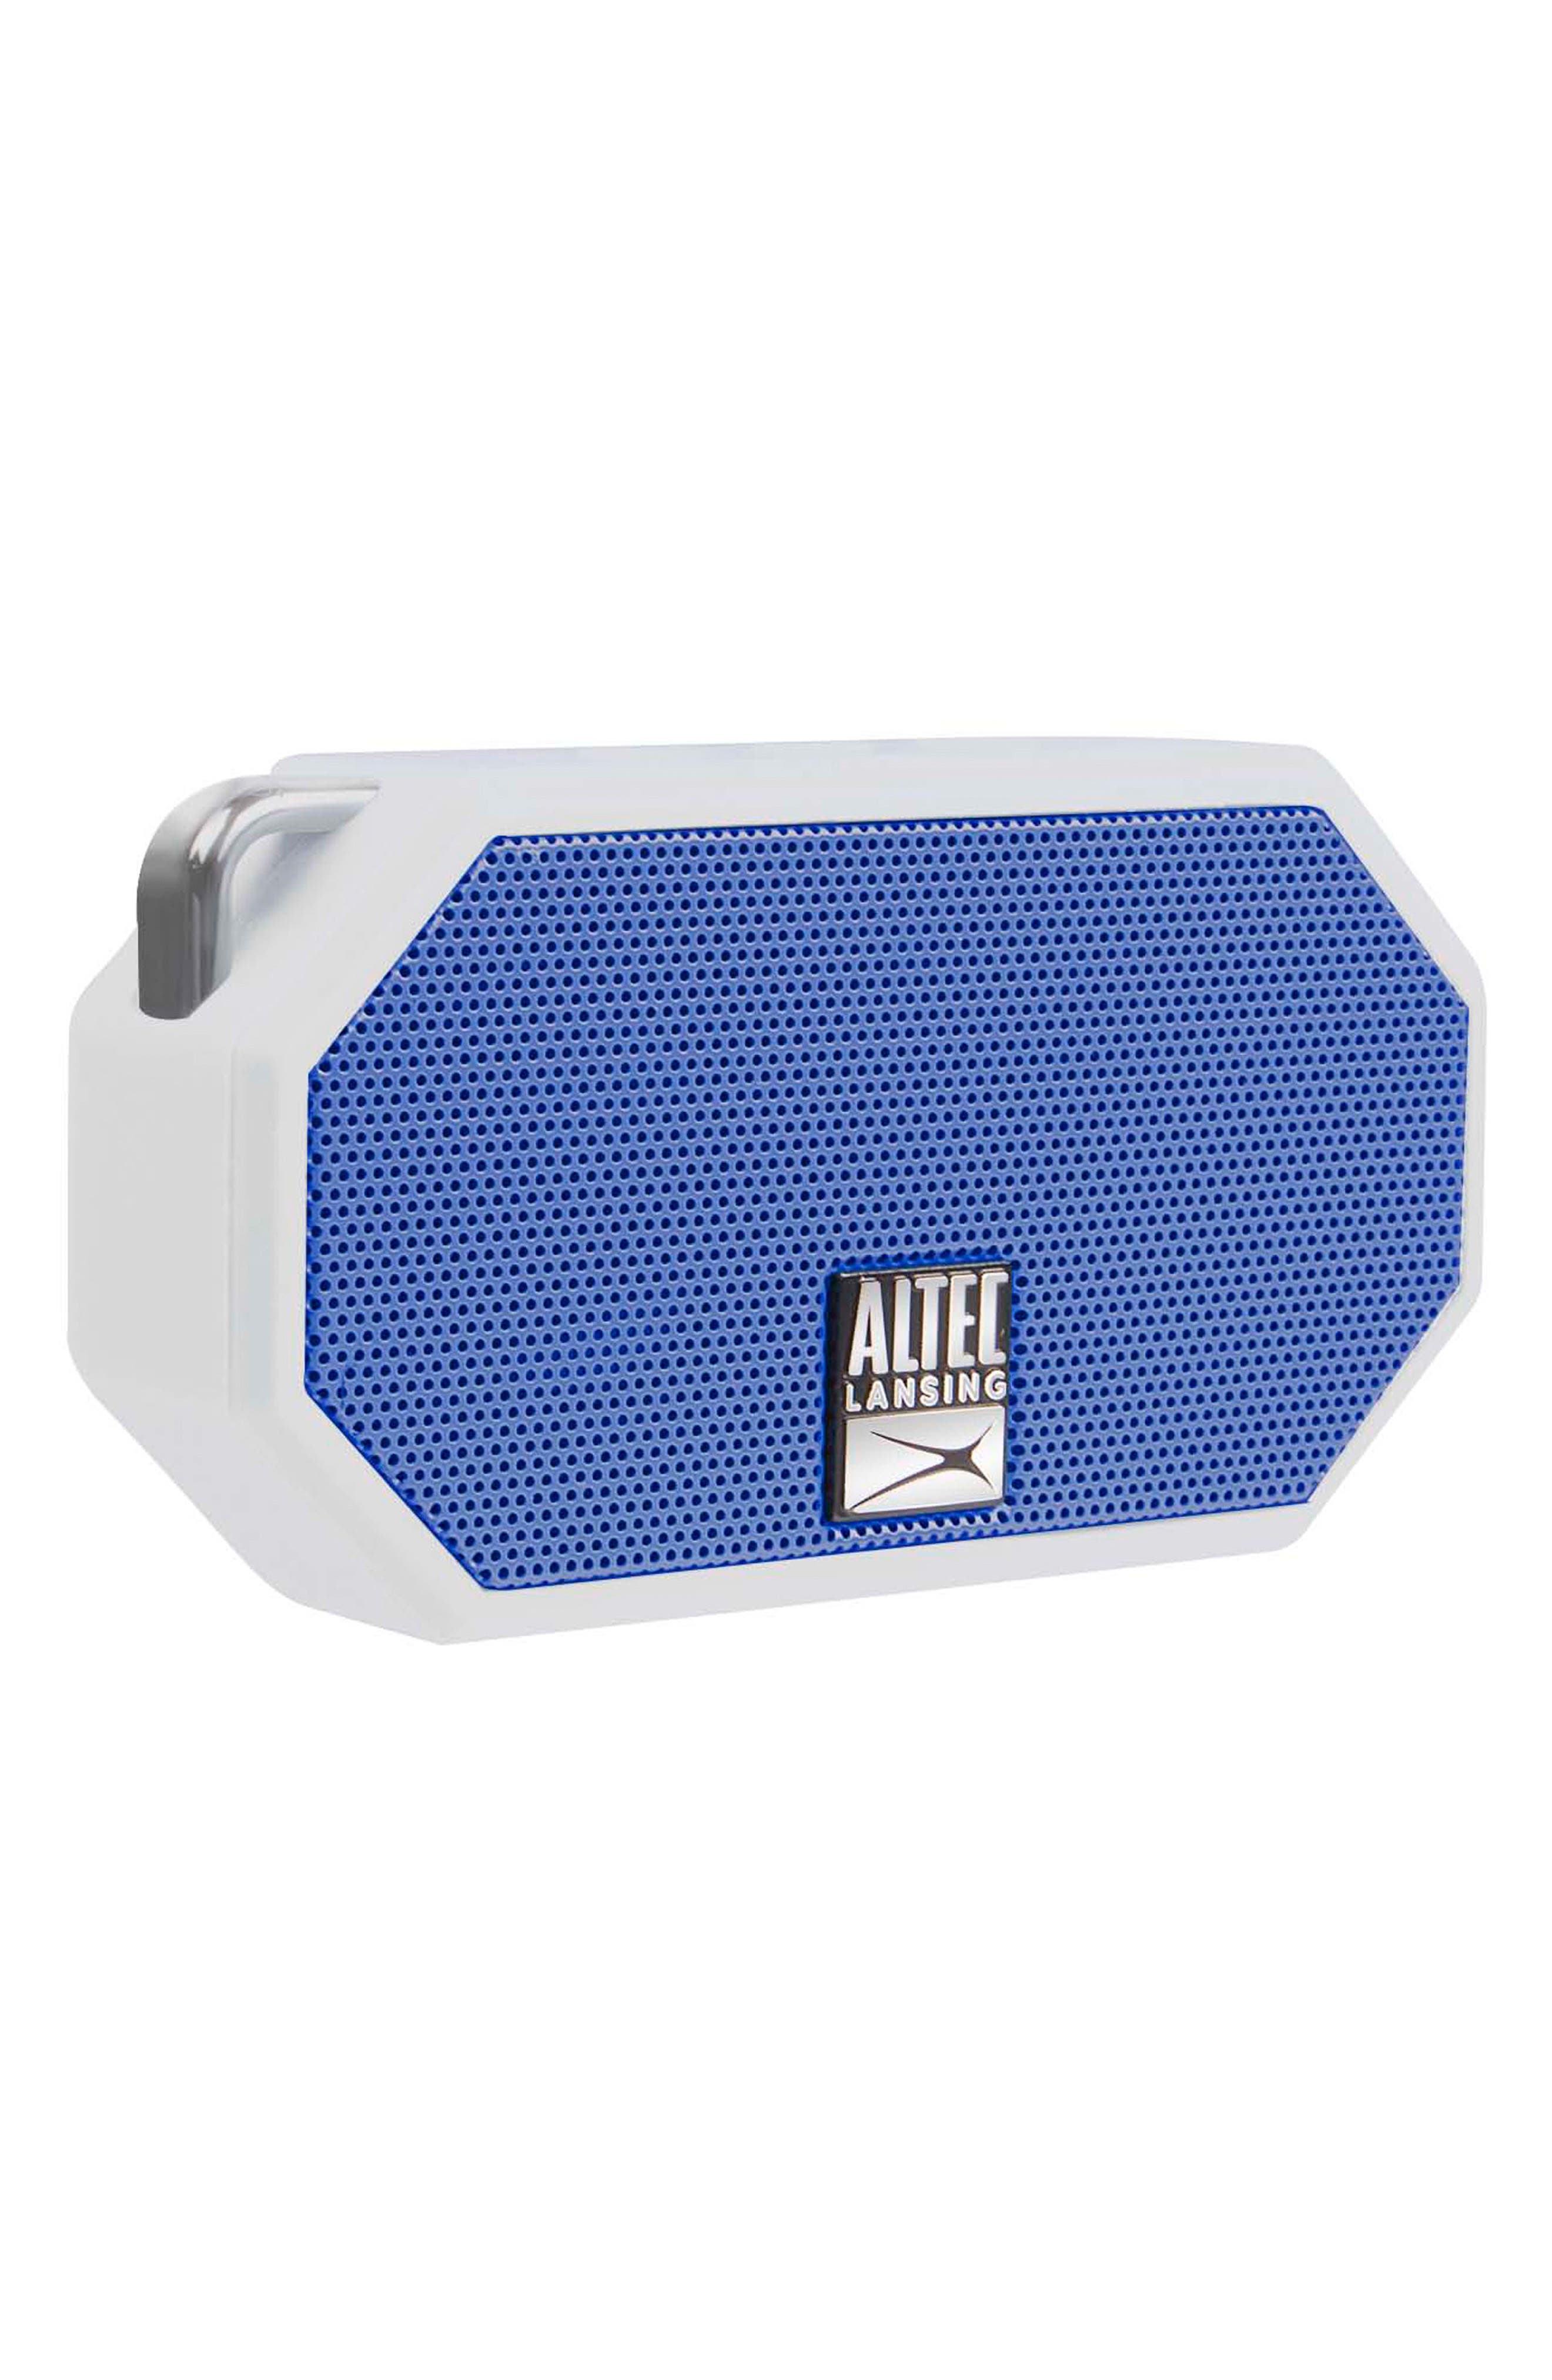 ALTEC LANSING,                             Mini H2O 3 Waterproof Compact Speaker,                             Alternate thumbnail 3, color,                             WHTE/ DEEP MID BLUE